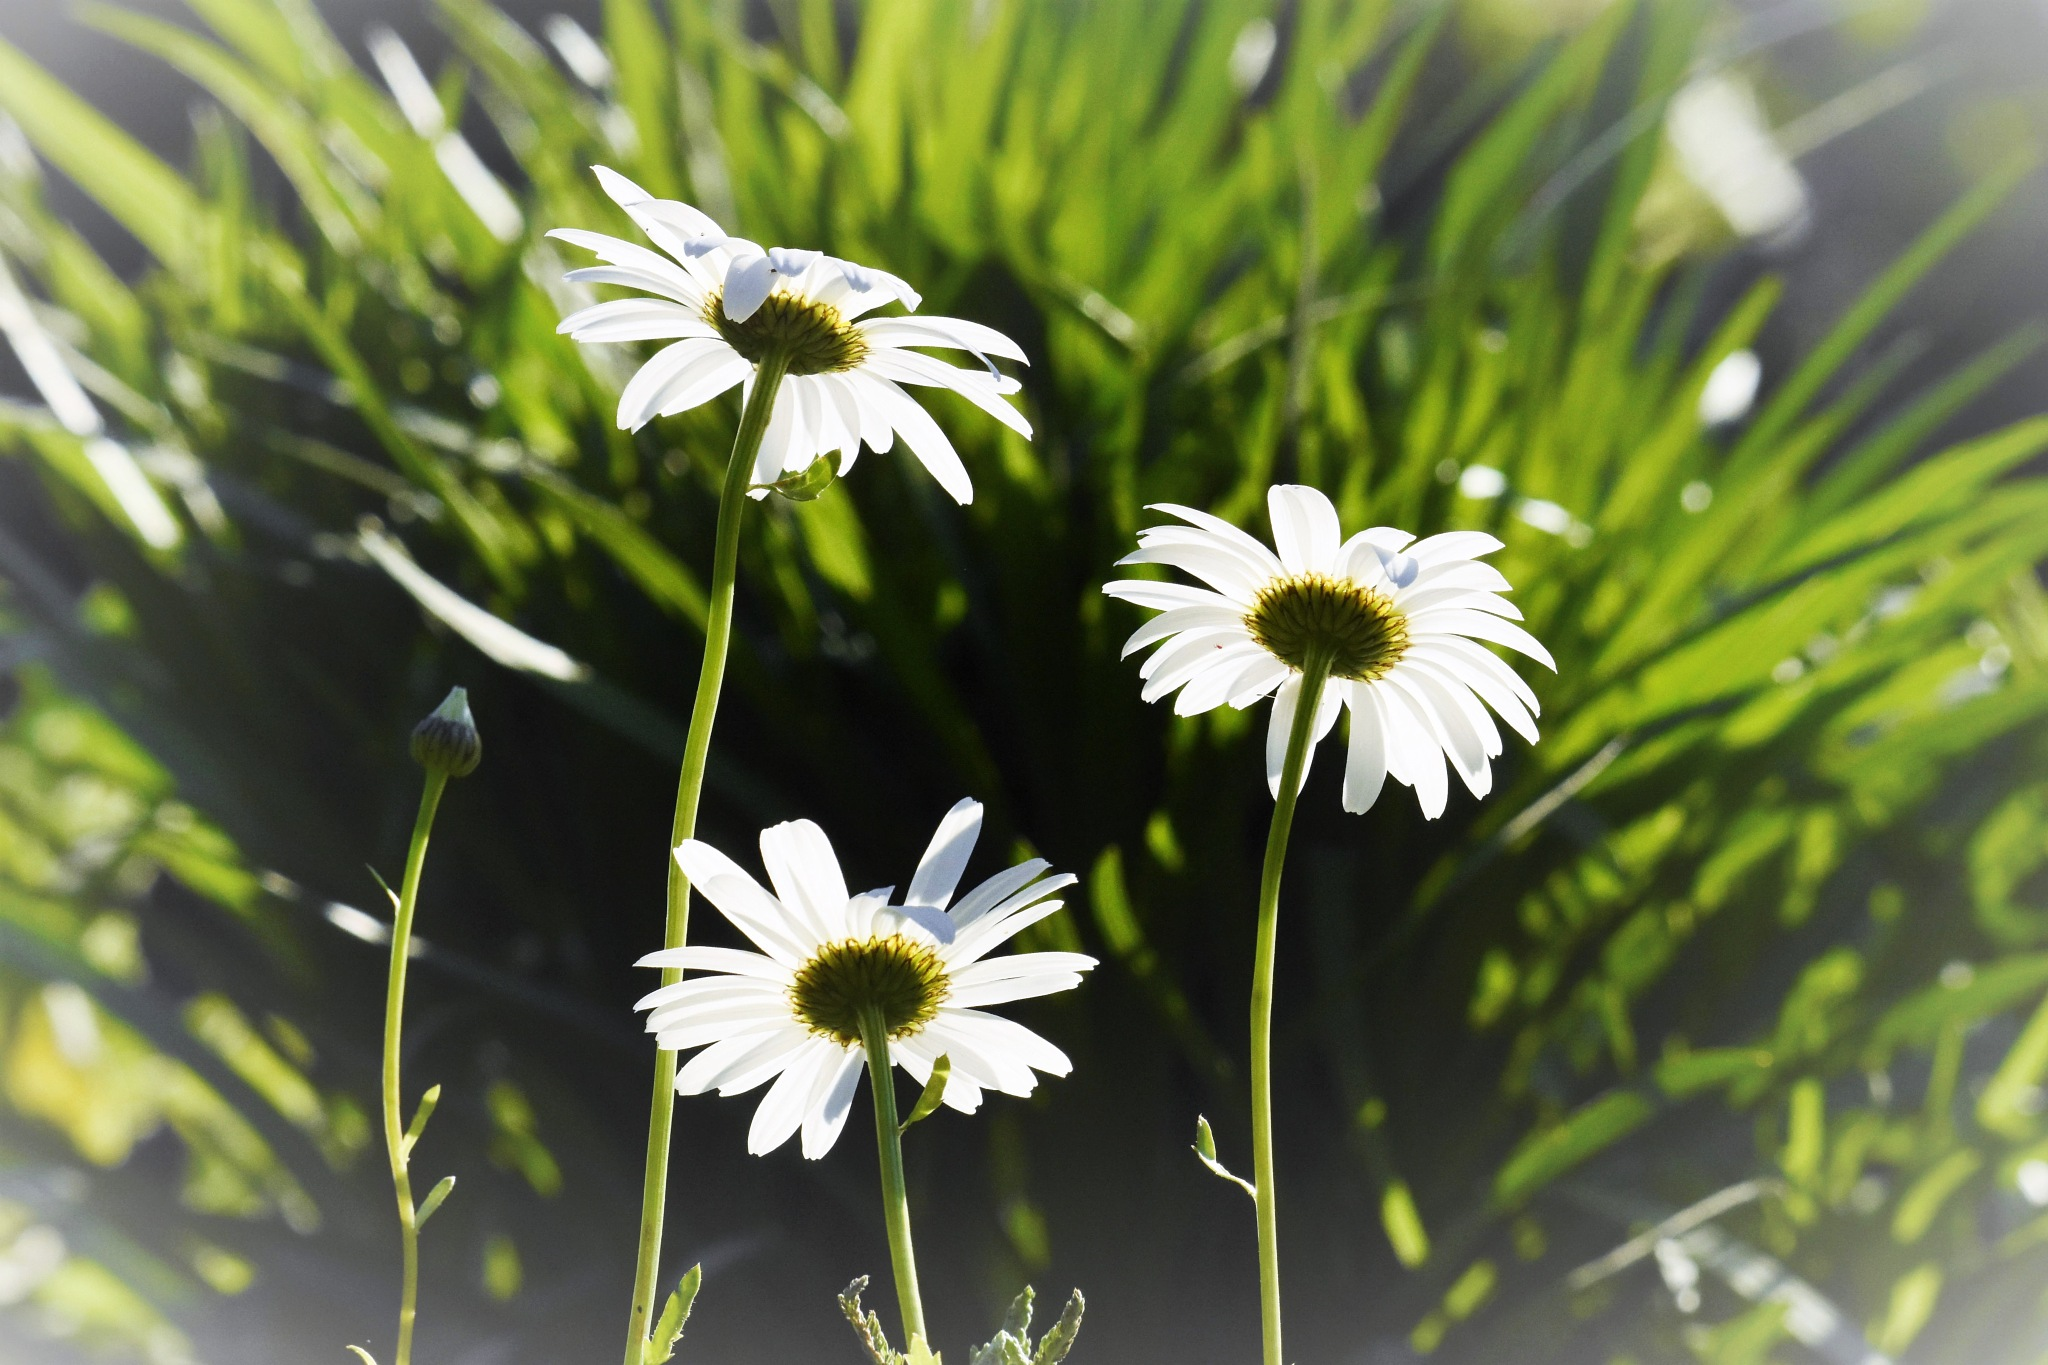 Daisys in the grass by LydiaJeanMay